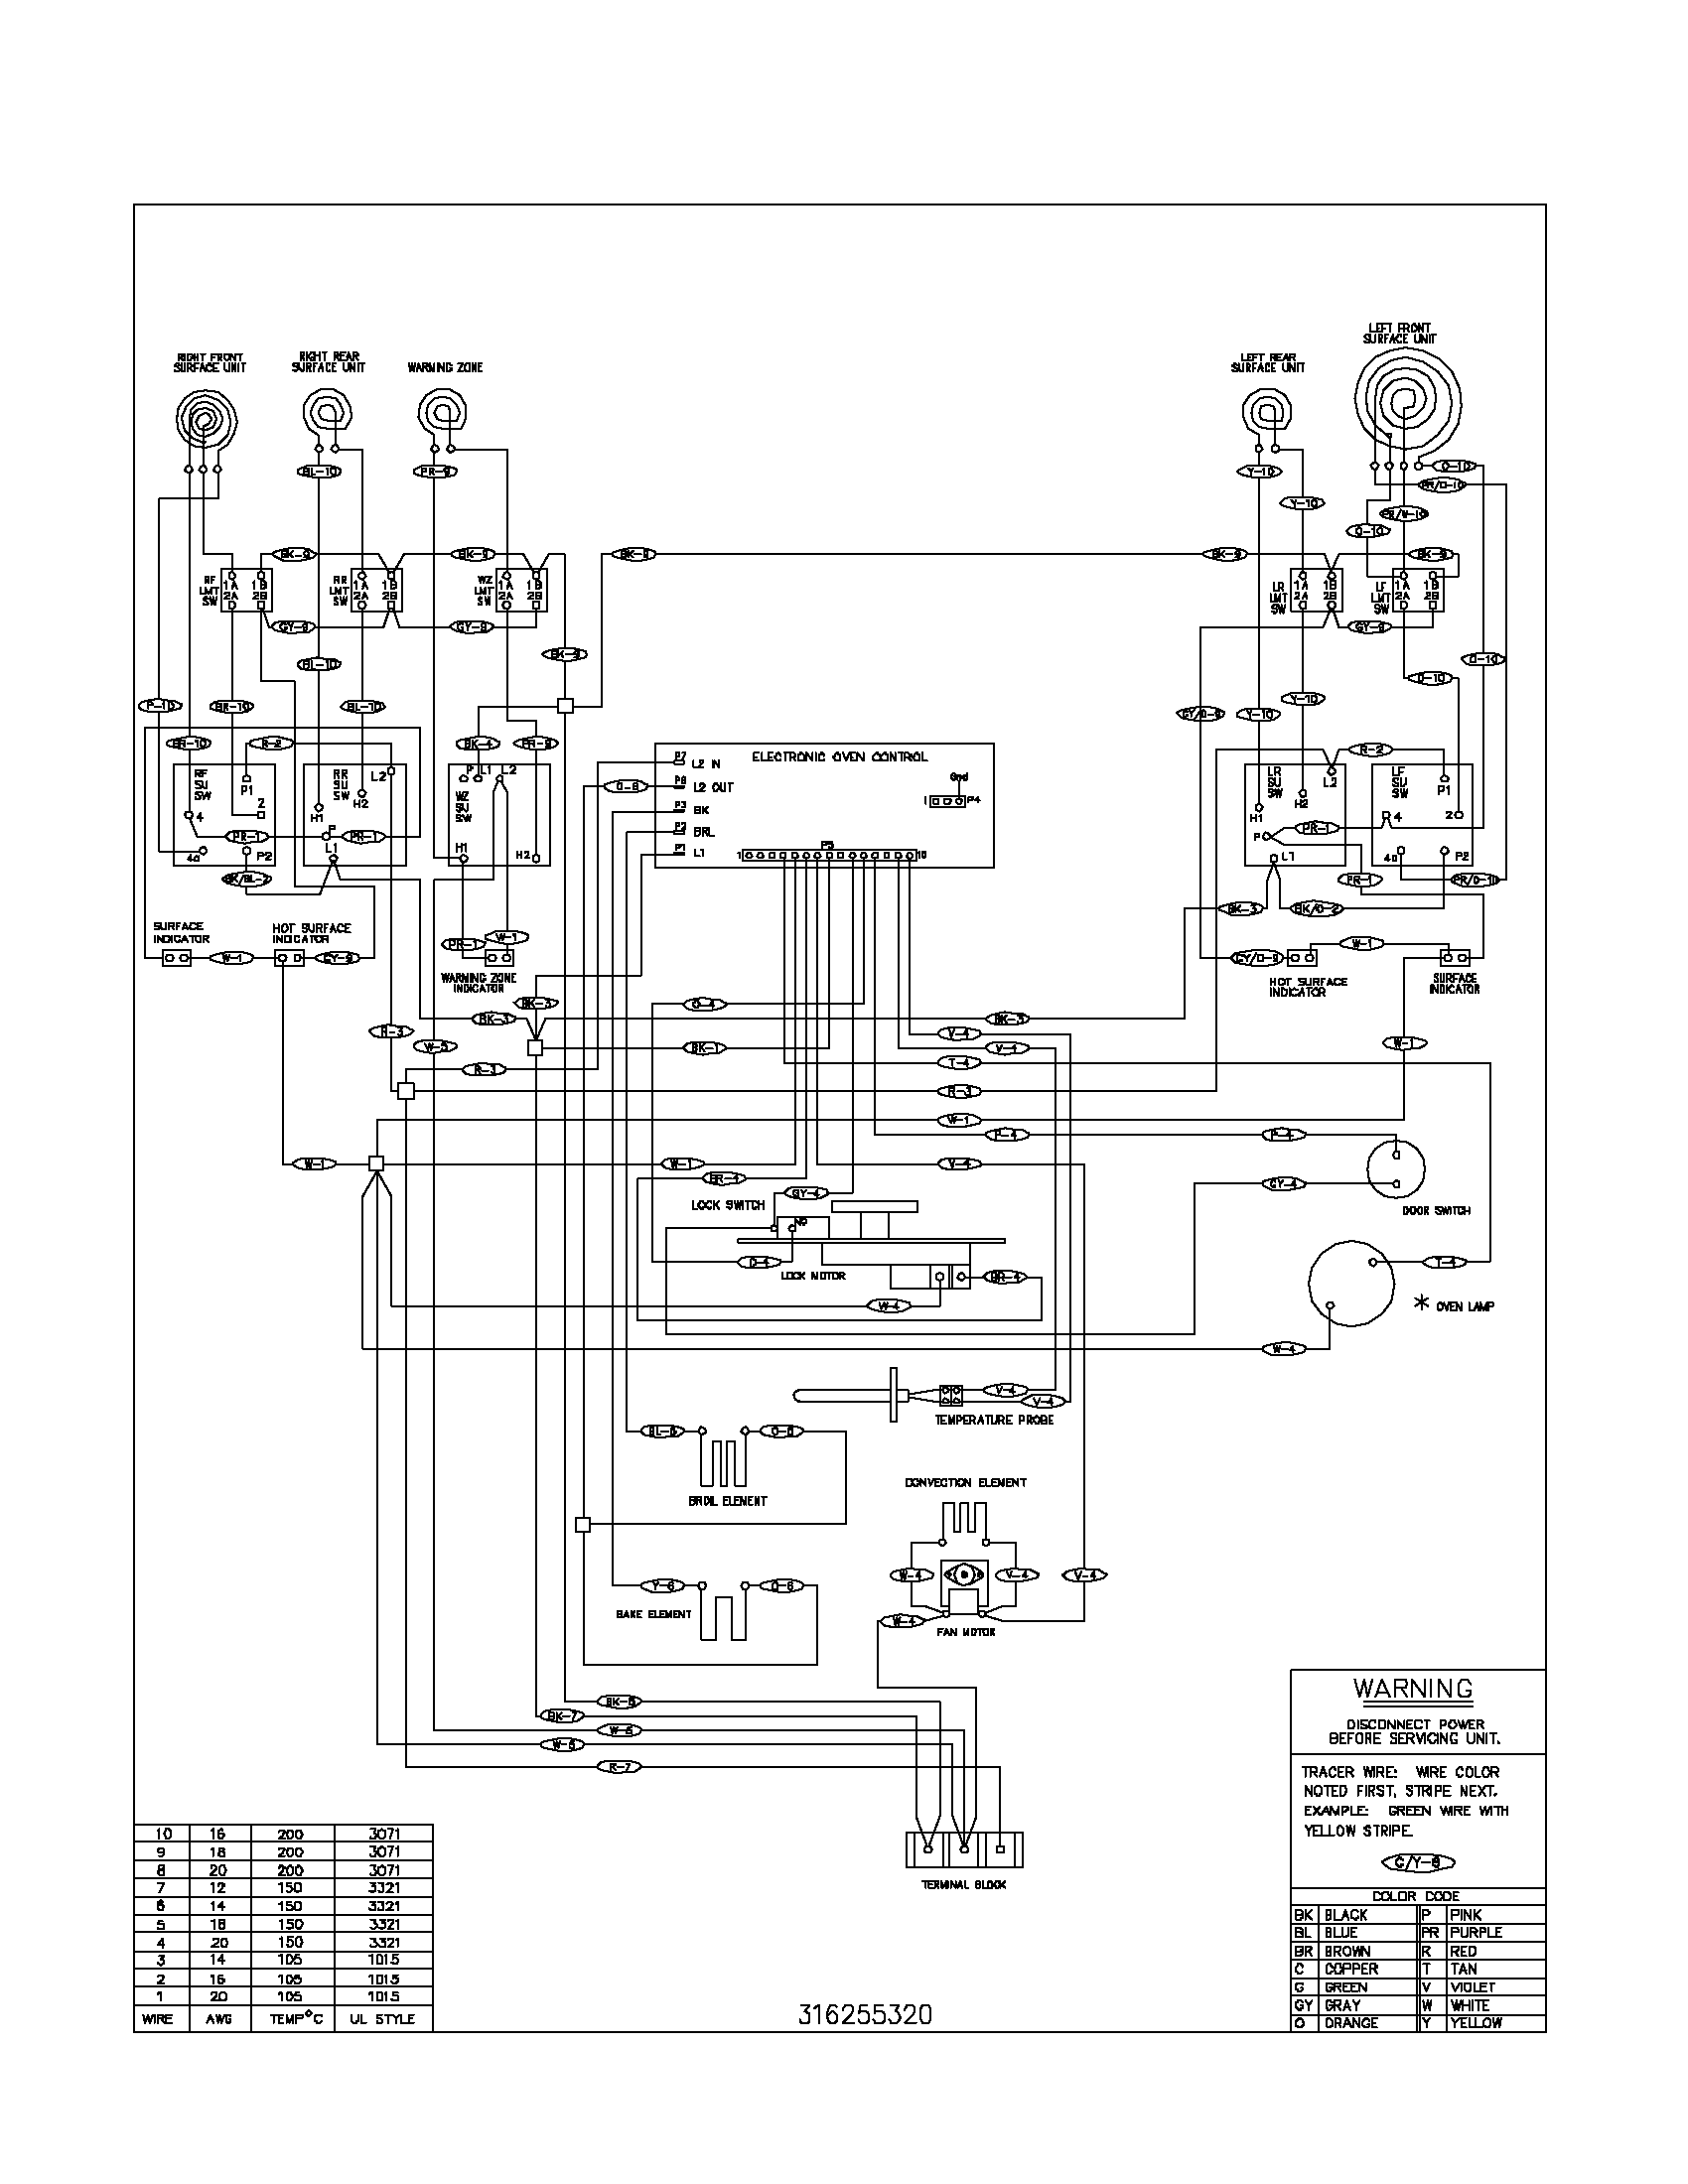 whirlpool fefl88acc electric range timer stove clocks andfefl88acc electric range wiring diagram parts diagram